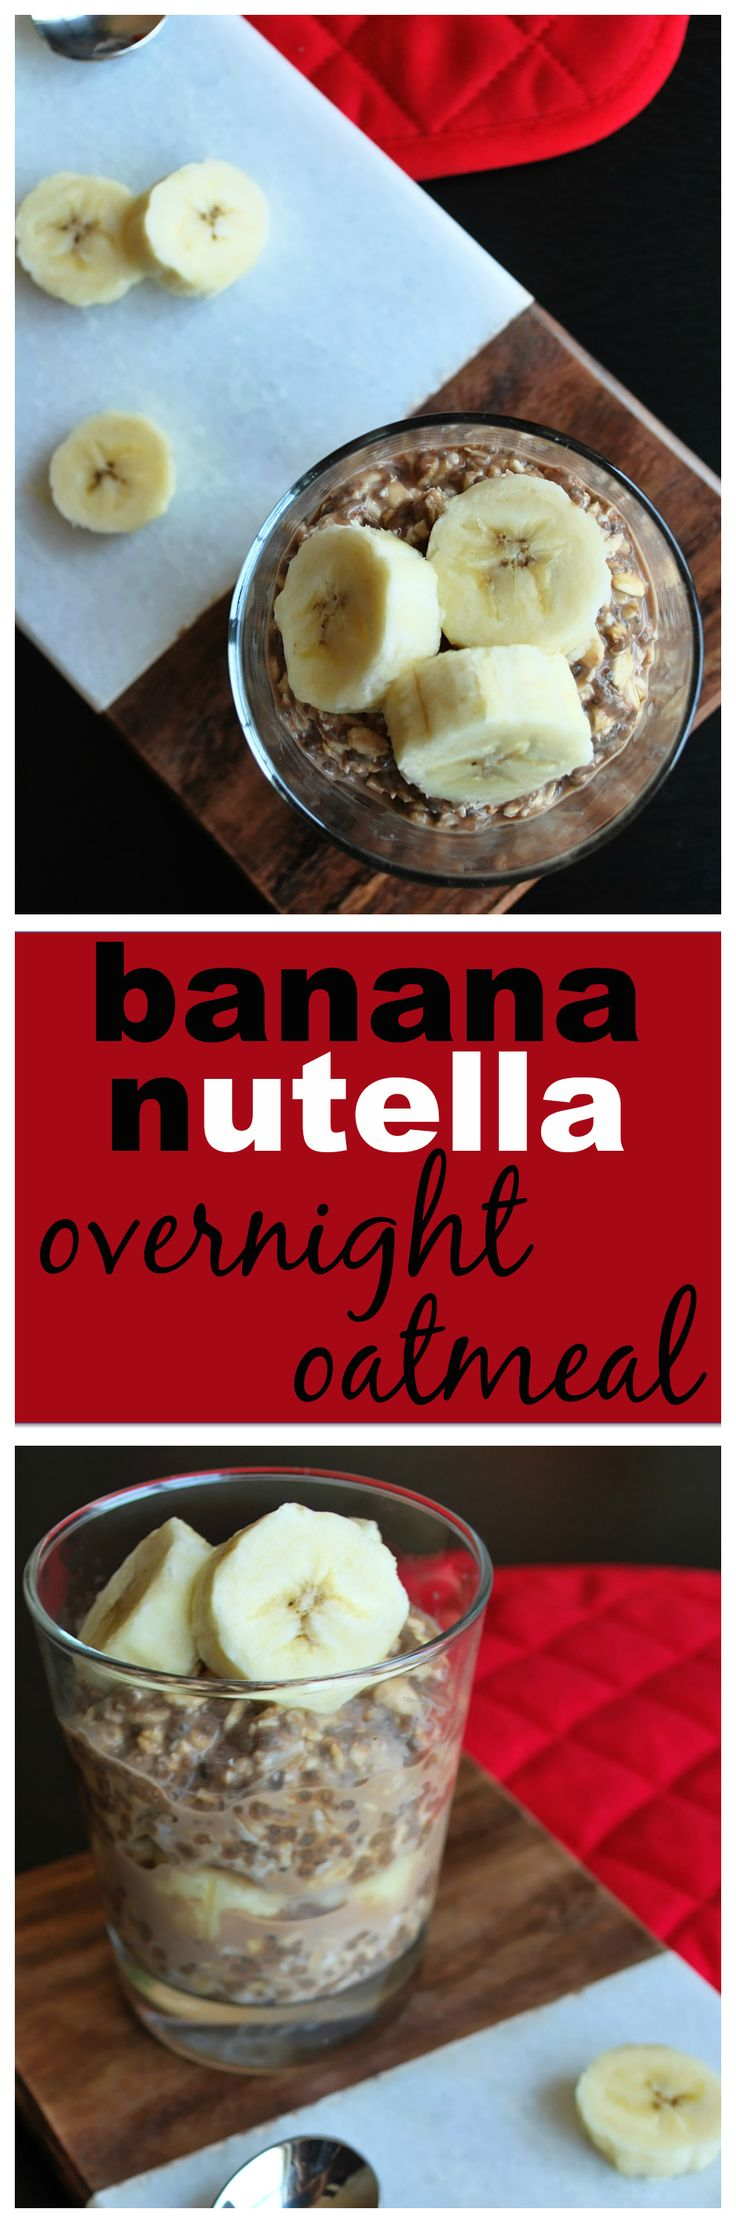 Banana Nutella Overnight Oatmeal: A gluten free and vegan breakfast fit for your busy on-the-go-mornings!    fooduzzi.com